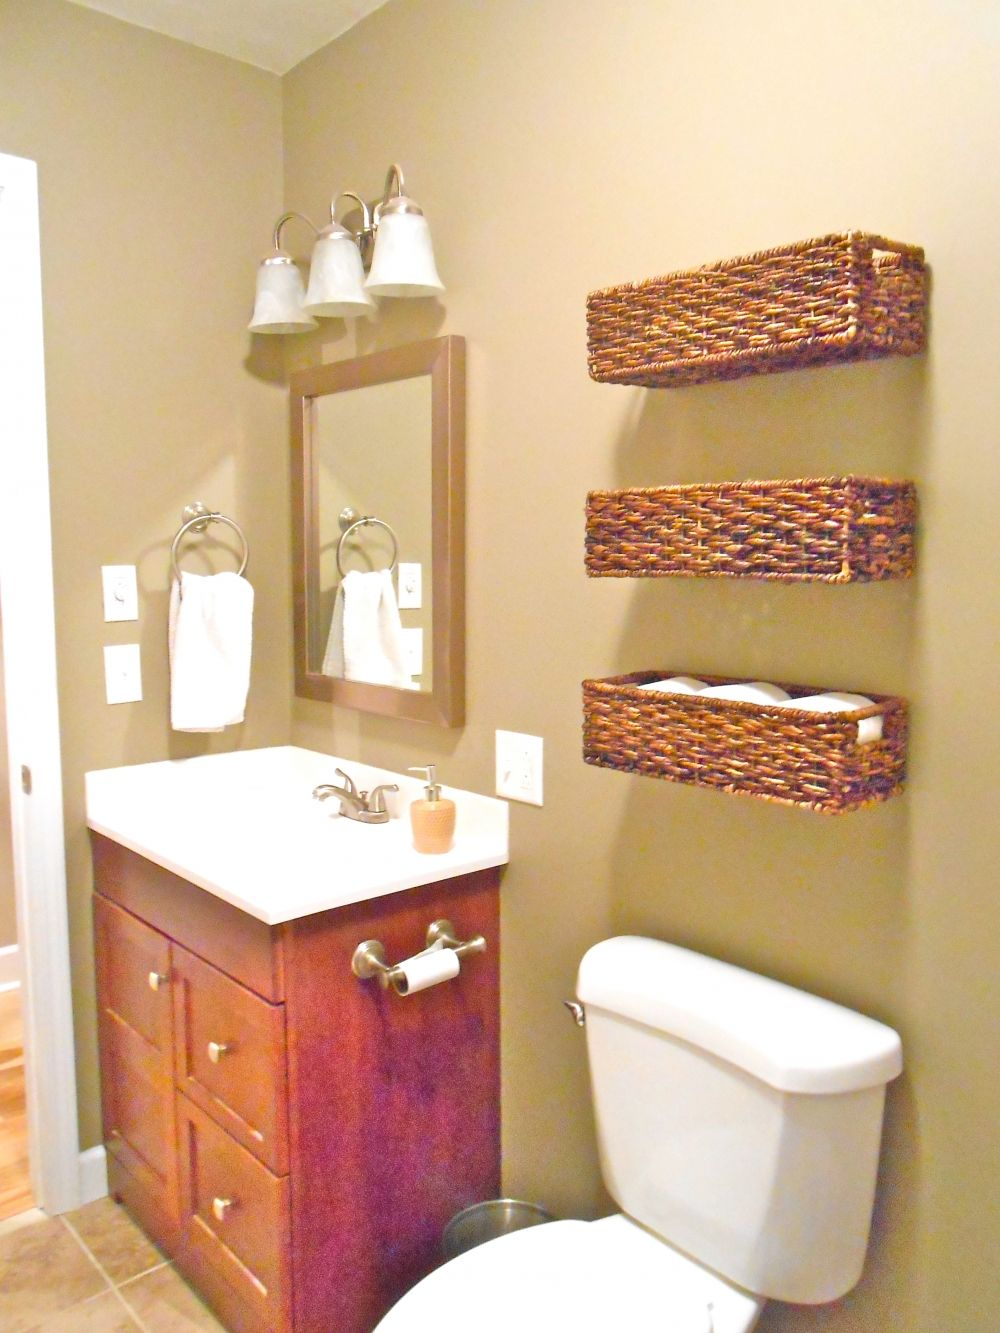 Exceptional Bathroom Baskets // Three Baskets Nailed To The Wall Through The Wicker